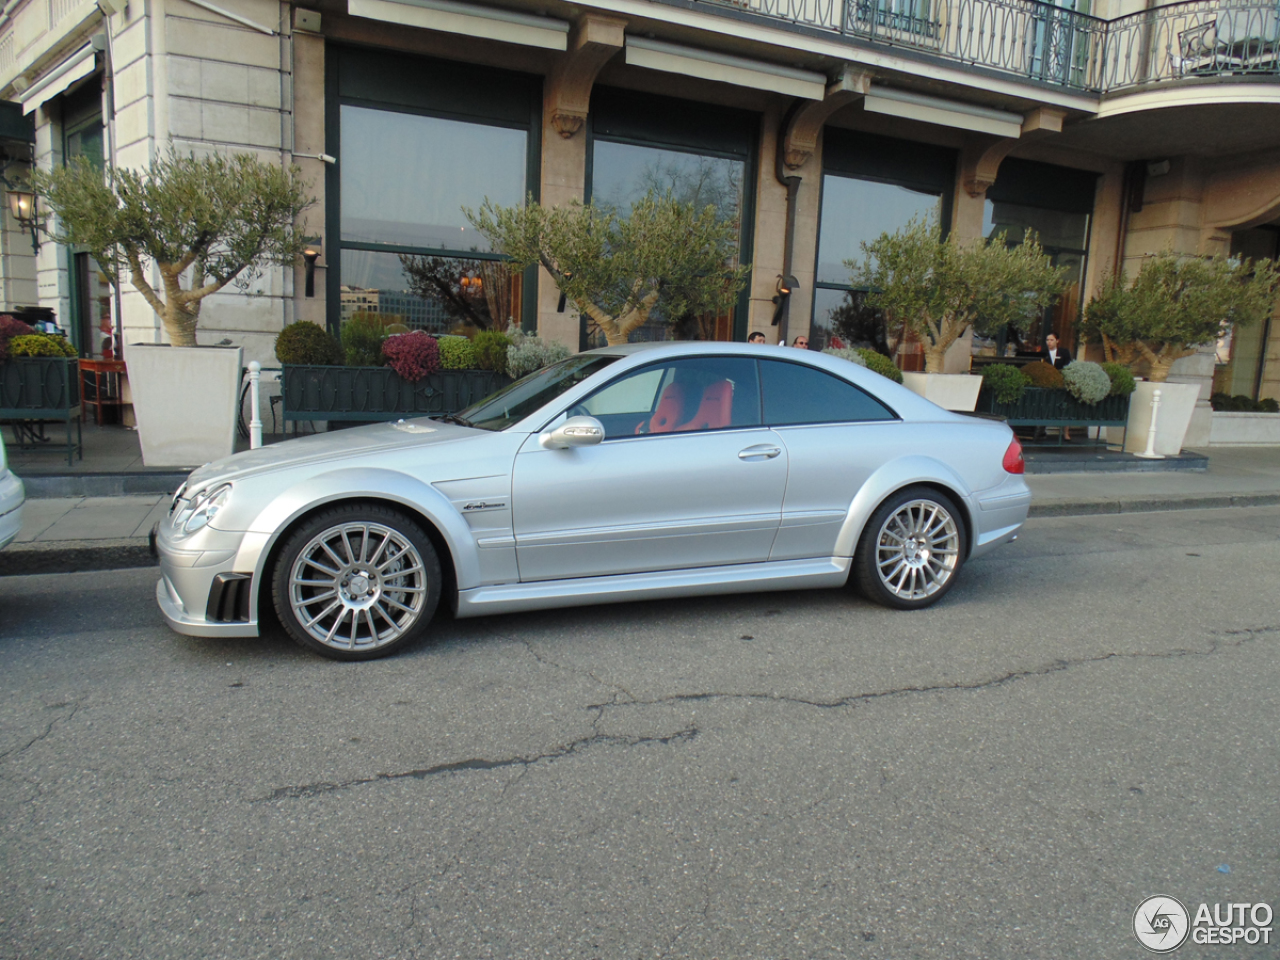 Mercedes benz clk 63 amg black series 20 march 2014 for Mercedes benz clk 63 amg